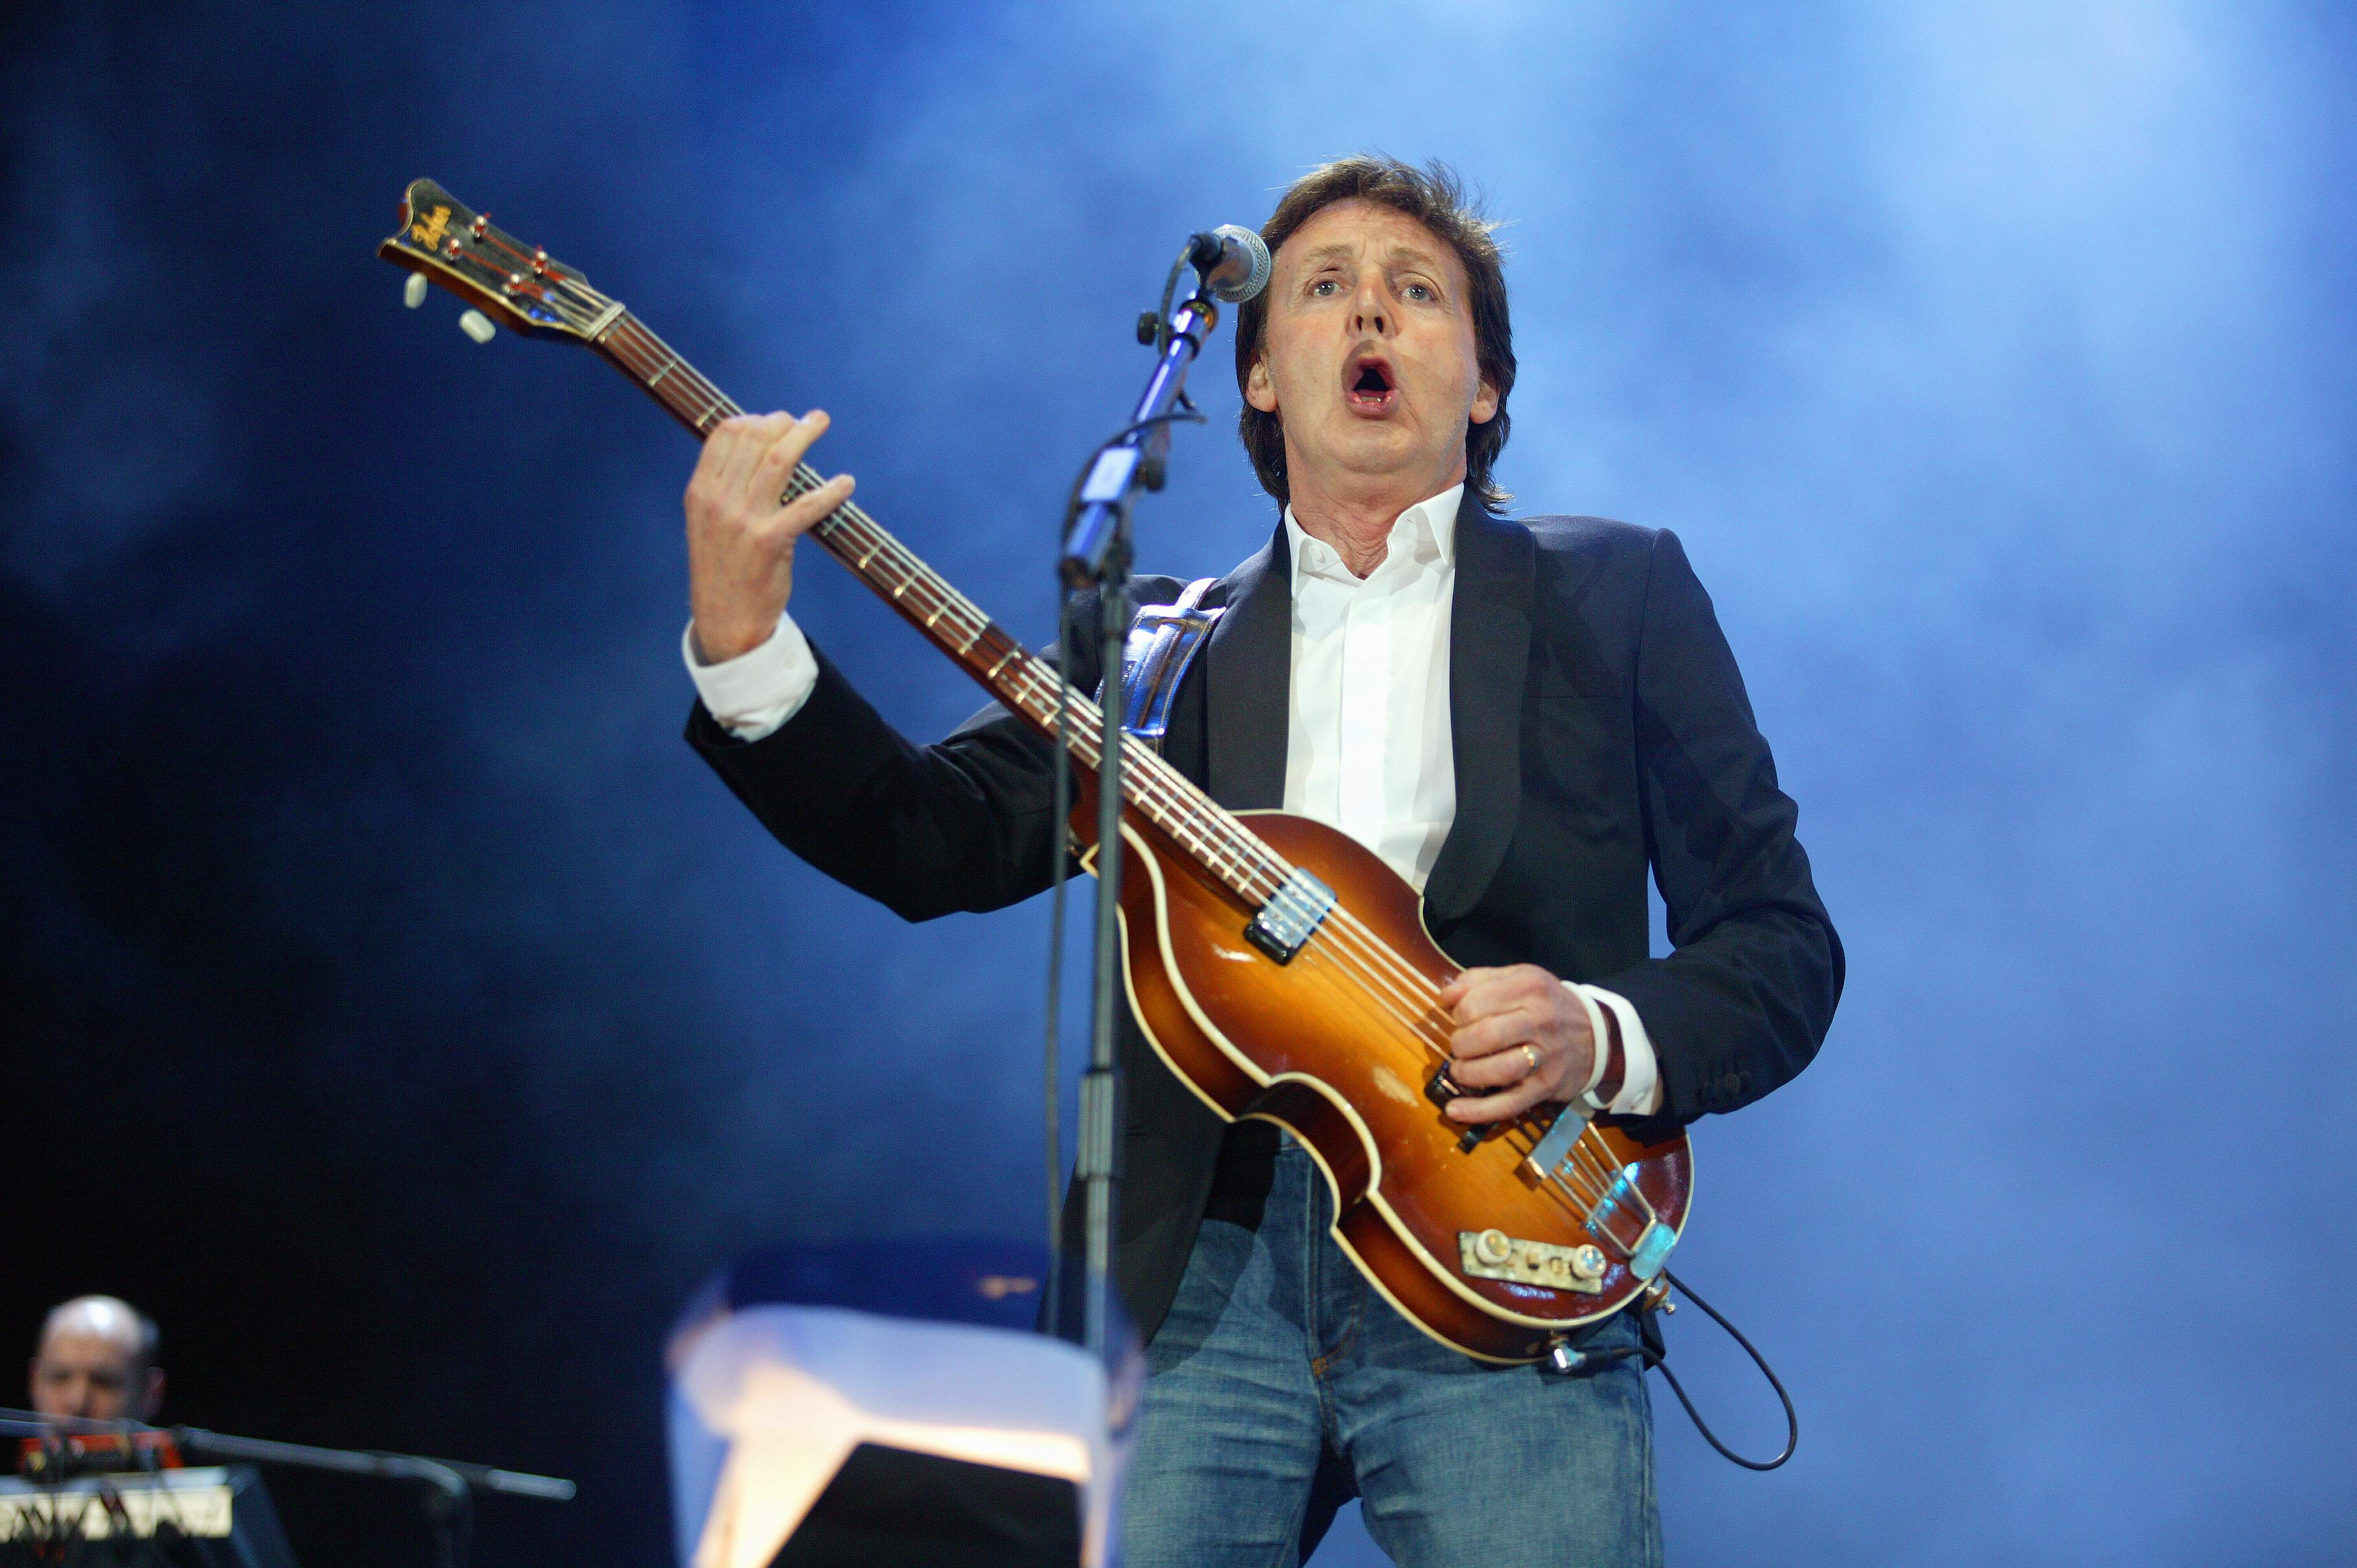 UNITED KINGDOM - JULY 02:  HYDE PARK  Photo of LIVE 8 and Paul McCARTNEY, performing live onstage at Live 8, playing Hofner 5